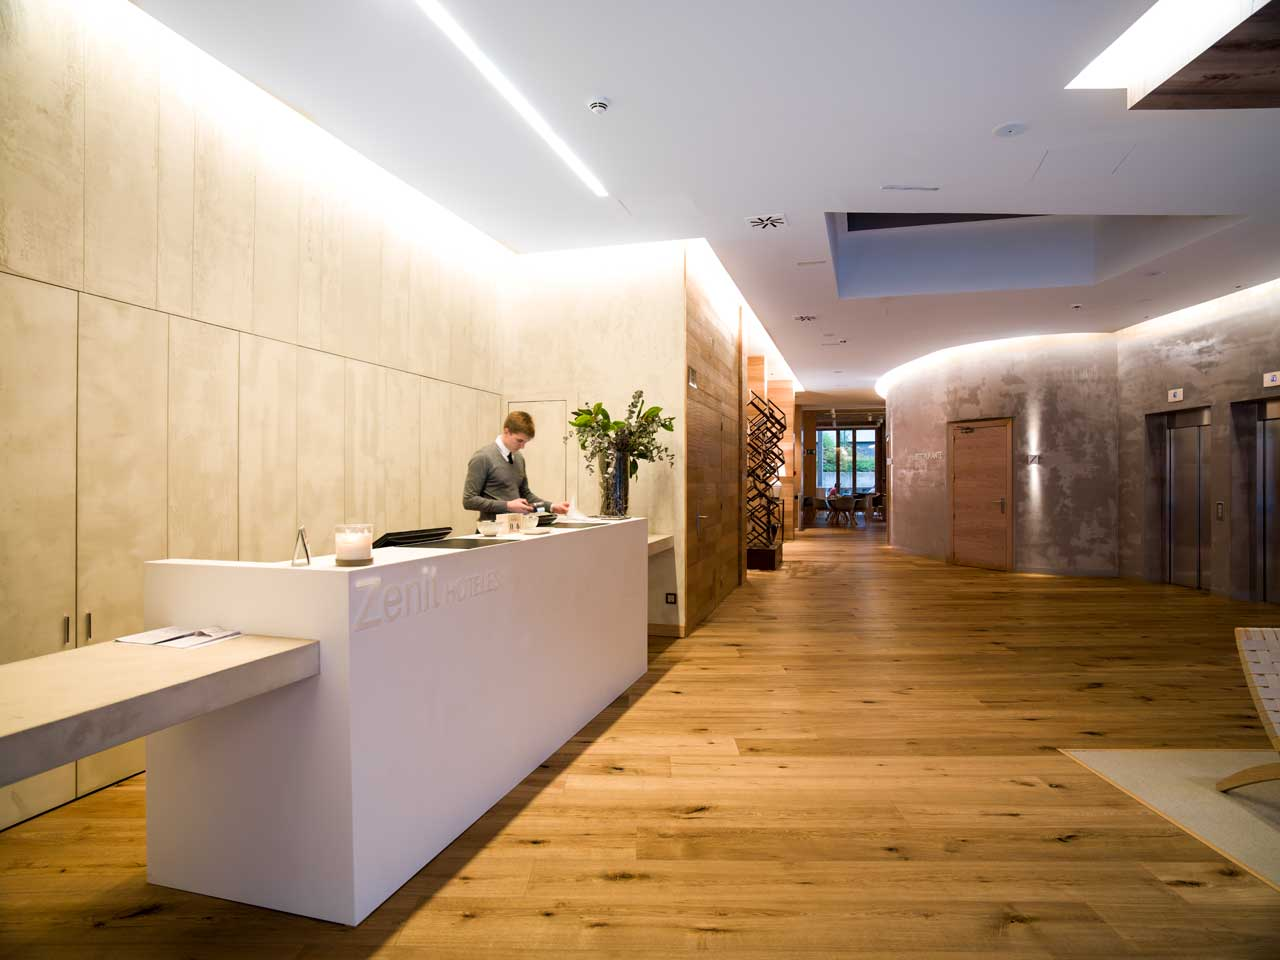 hotel zenit - san sebastian - españa. Solid Surface for meble handlowe